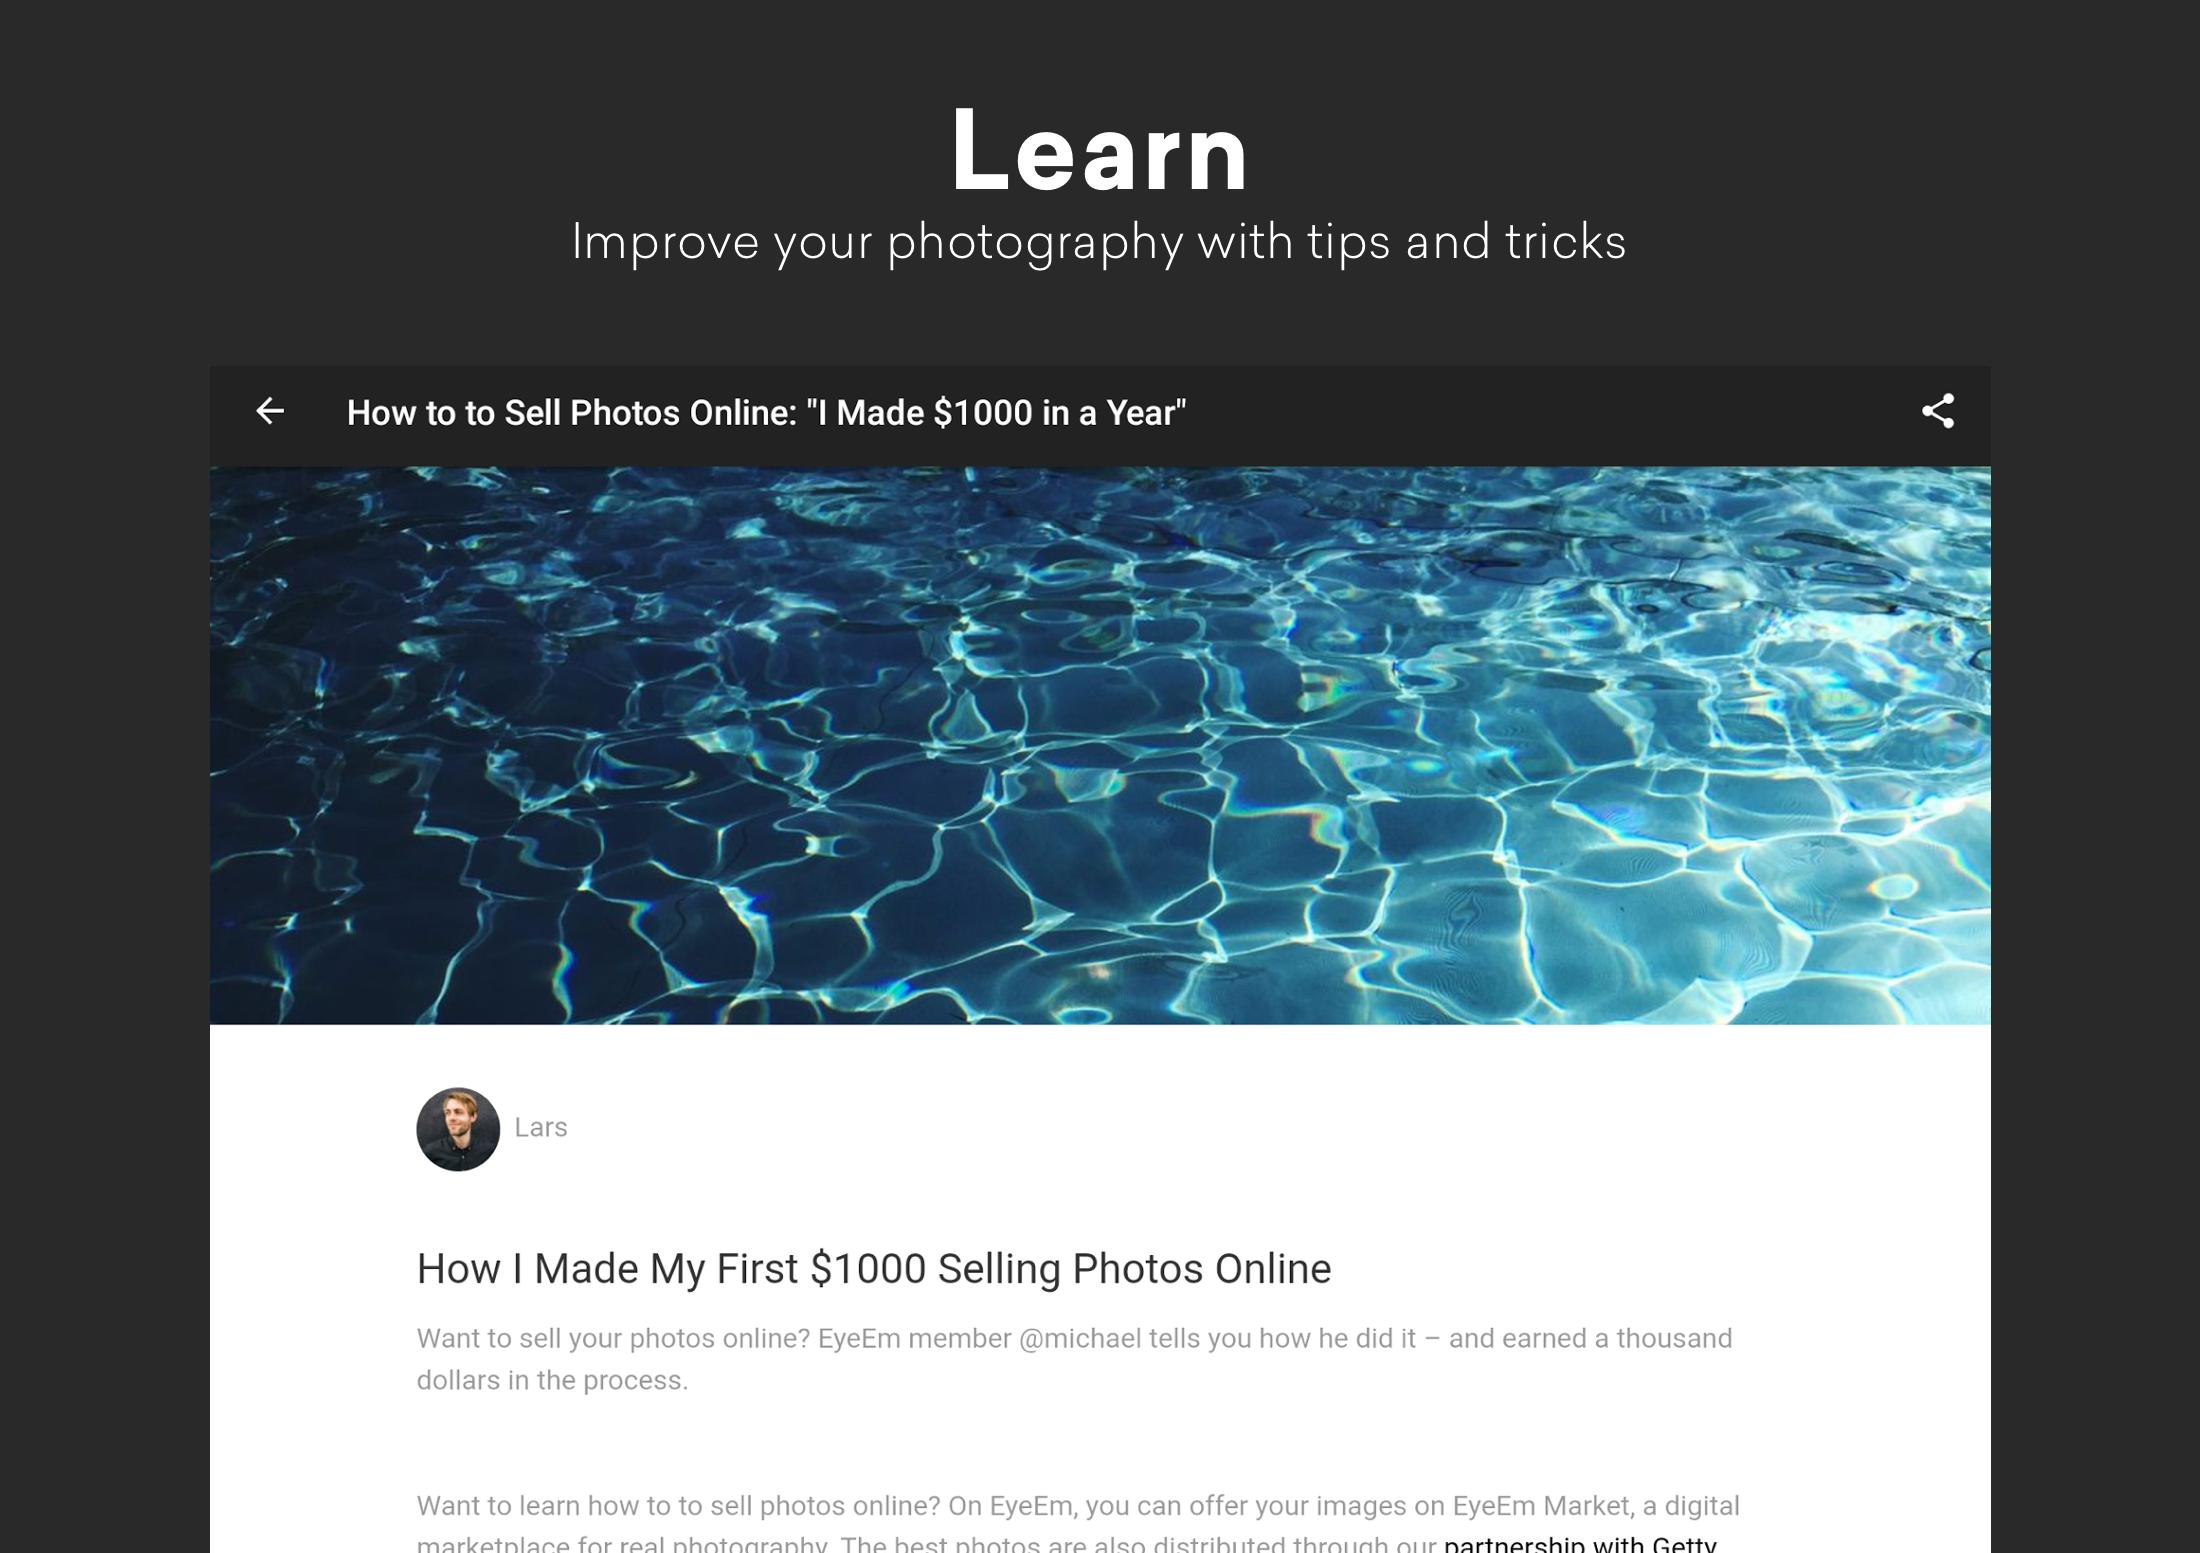 EyeEm Free Photo App For Sharing & Selling Images 8.1 Screenshot 11